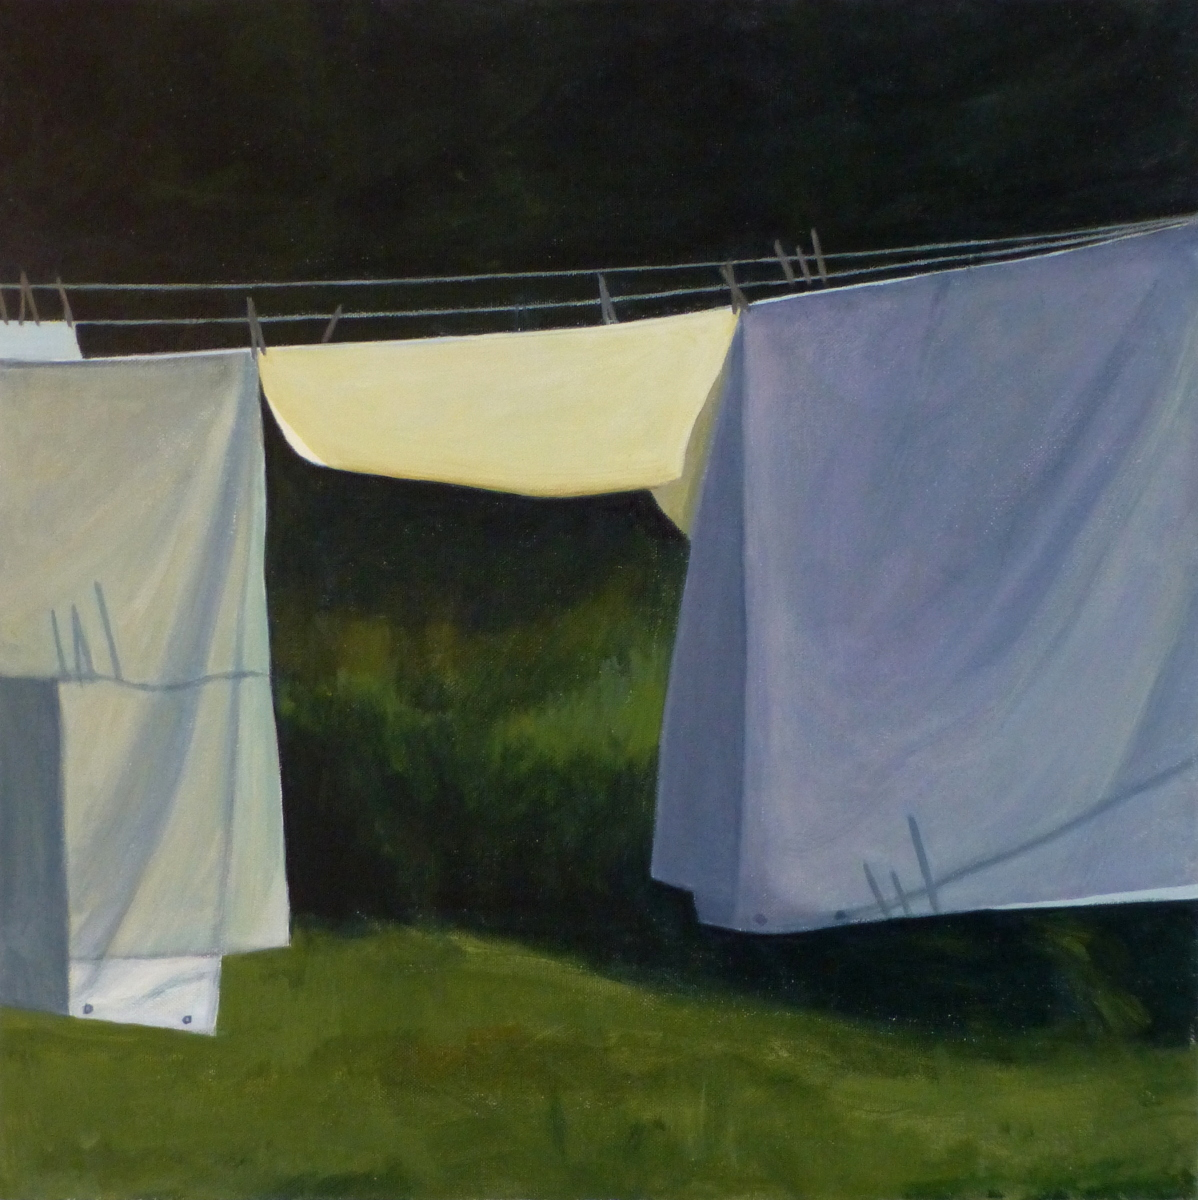 Laundry Day, 4 (large view)